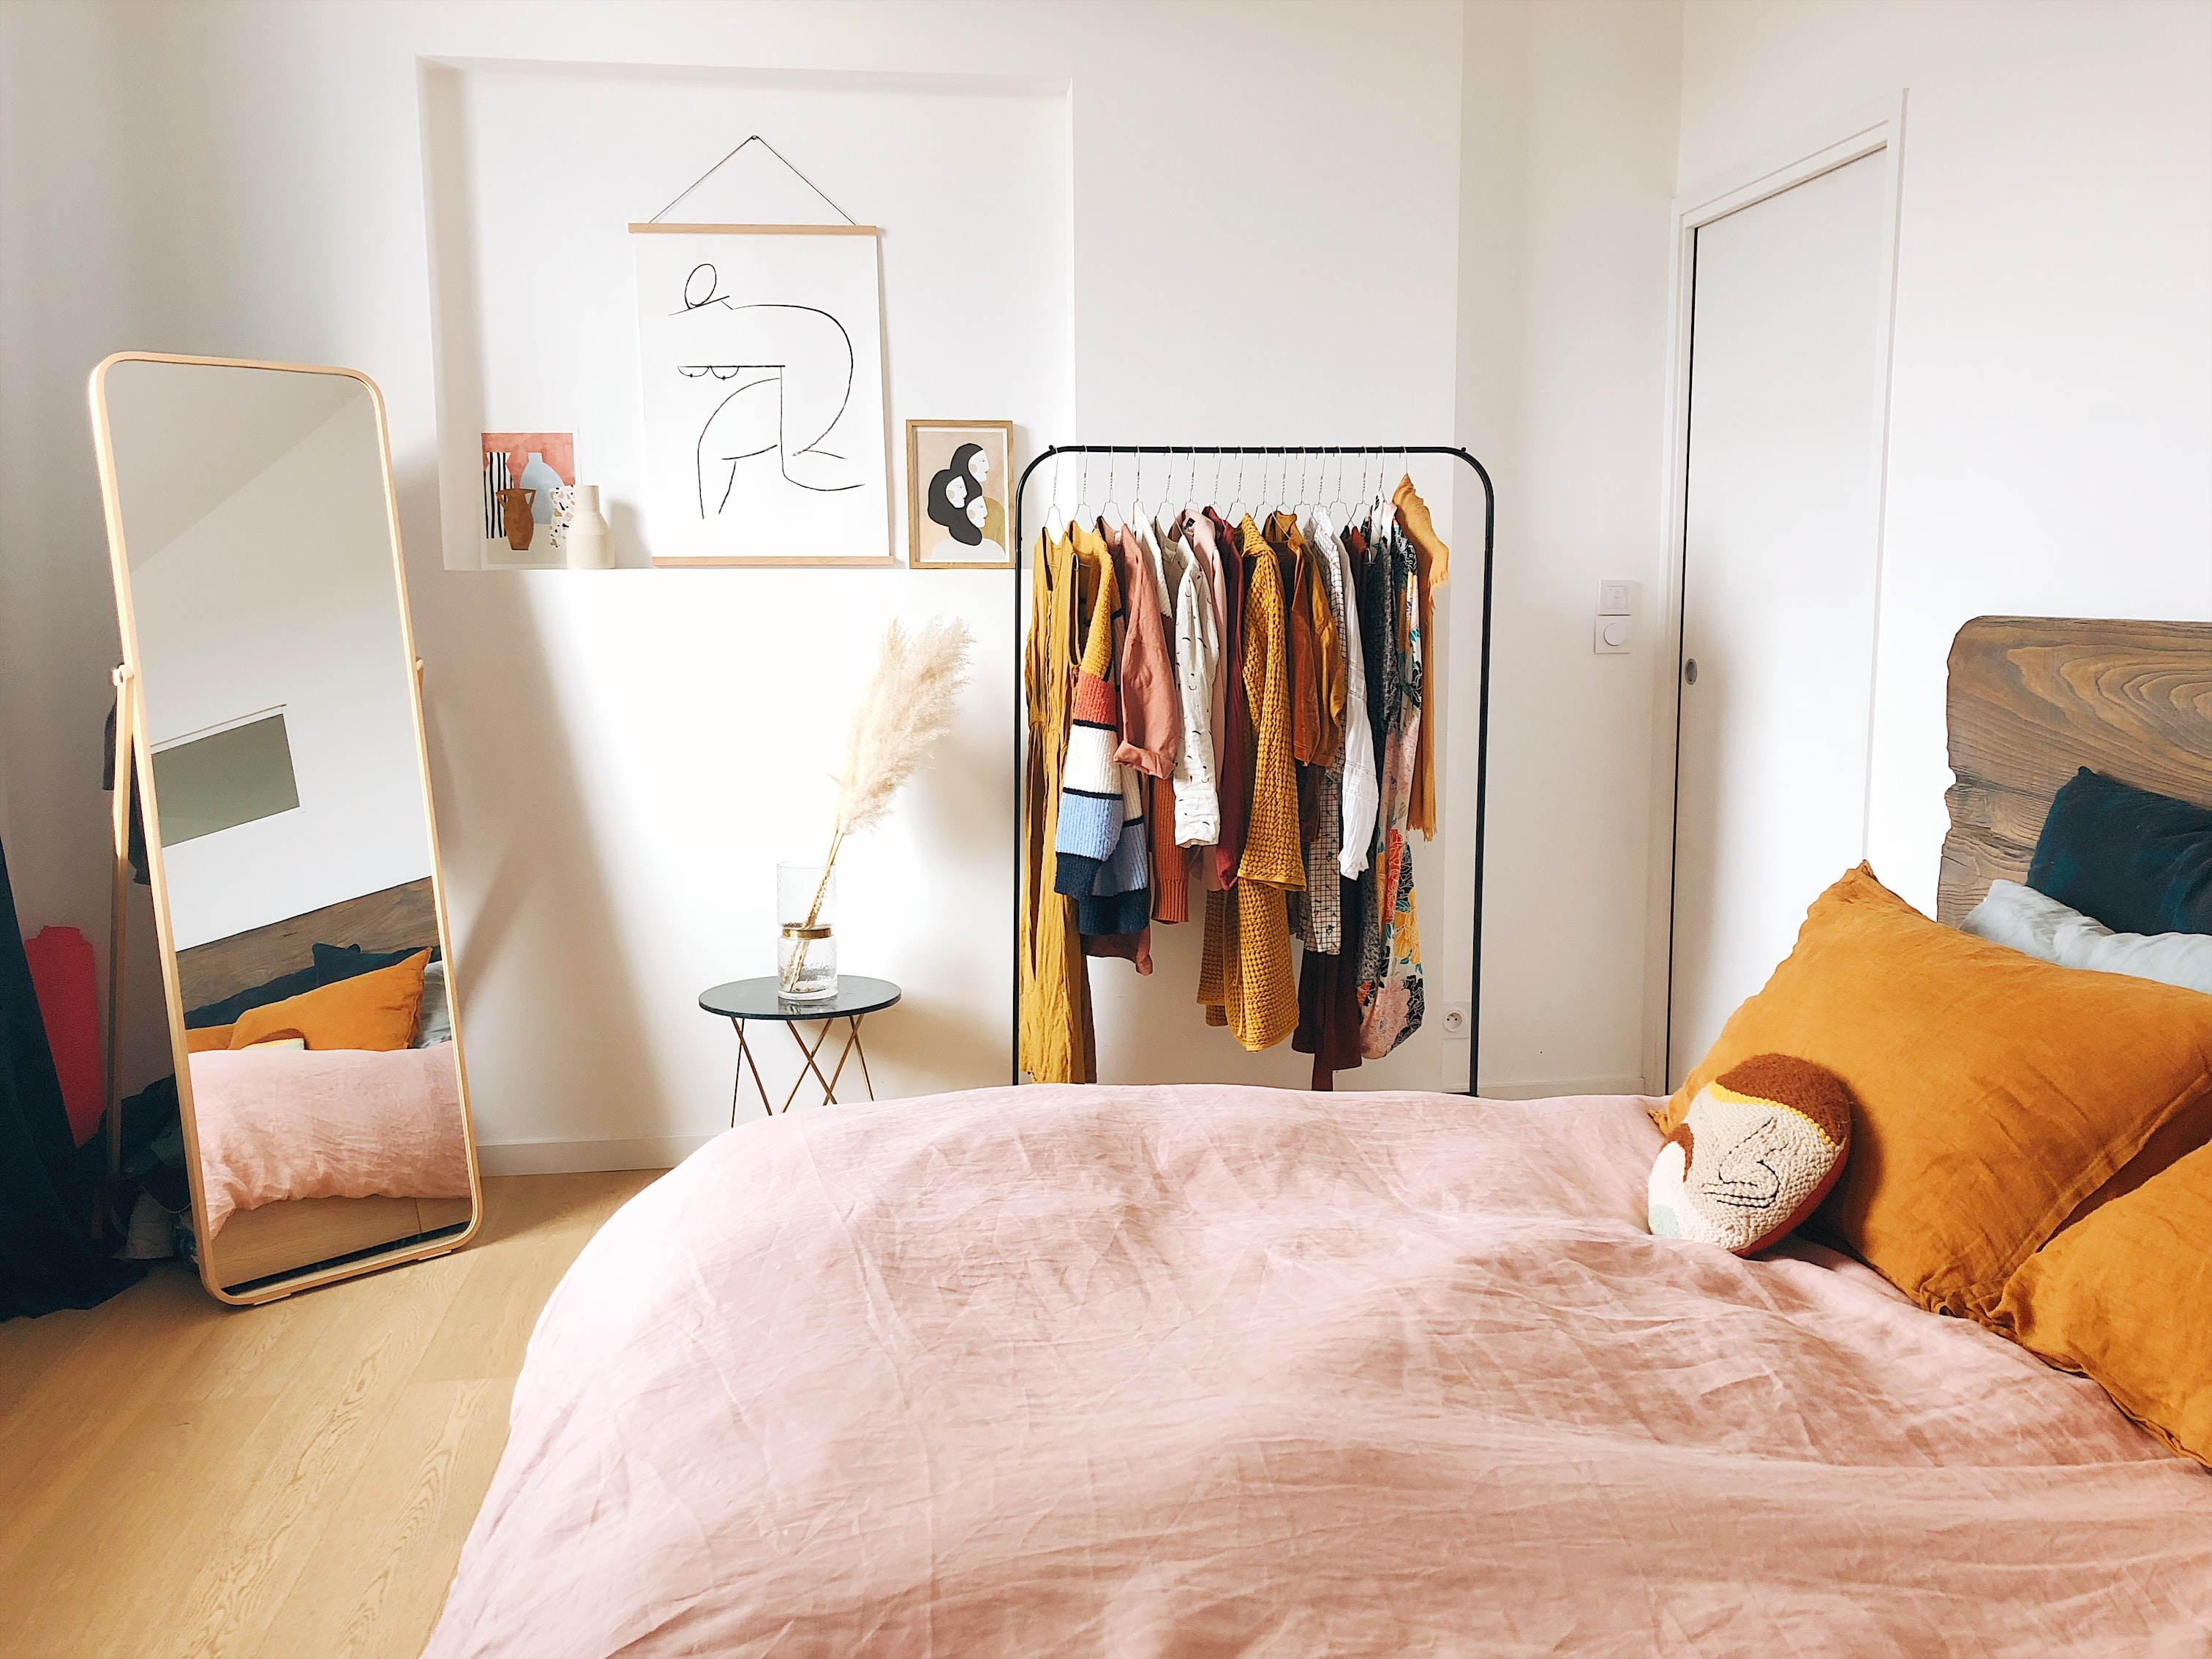 *10 College Bedding For Every Style Dorm